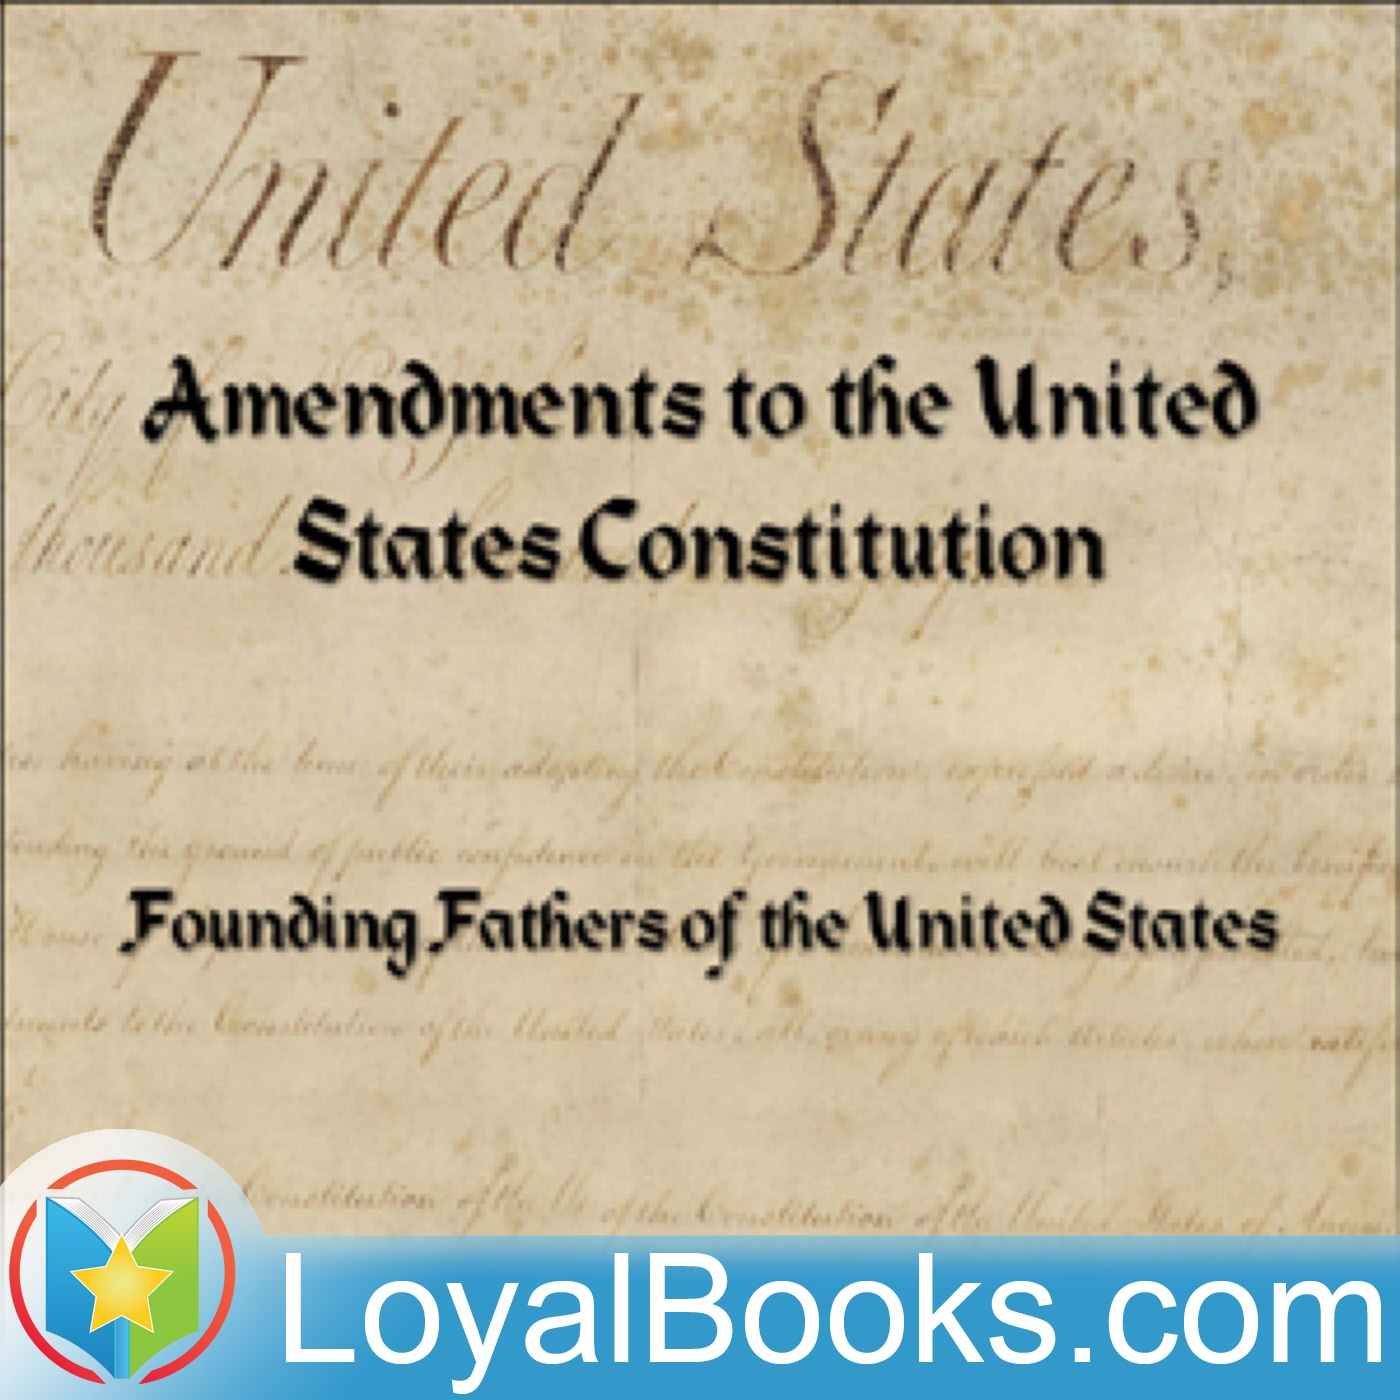 <![CDATA[Bill of Rights & Amendments to the US Constitution by Founding Fathers of the United States]]>